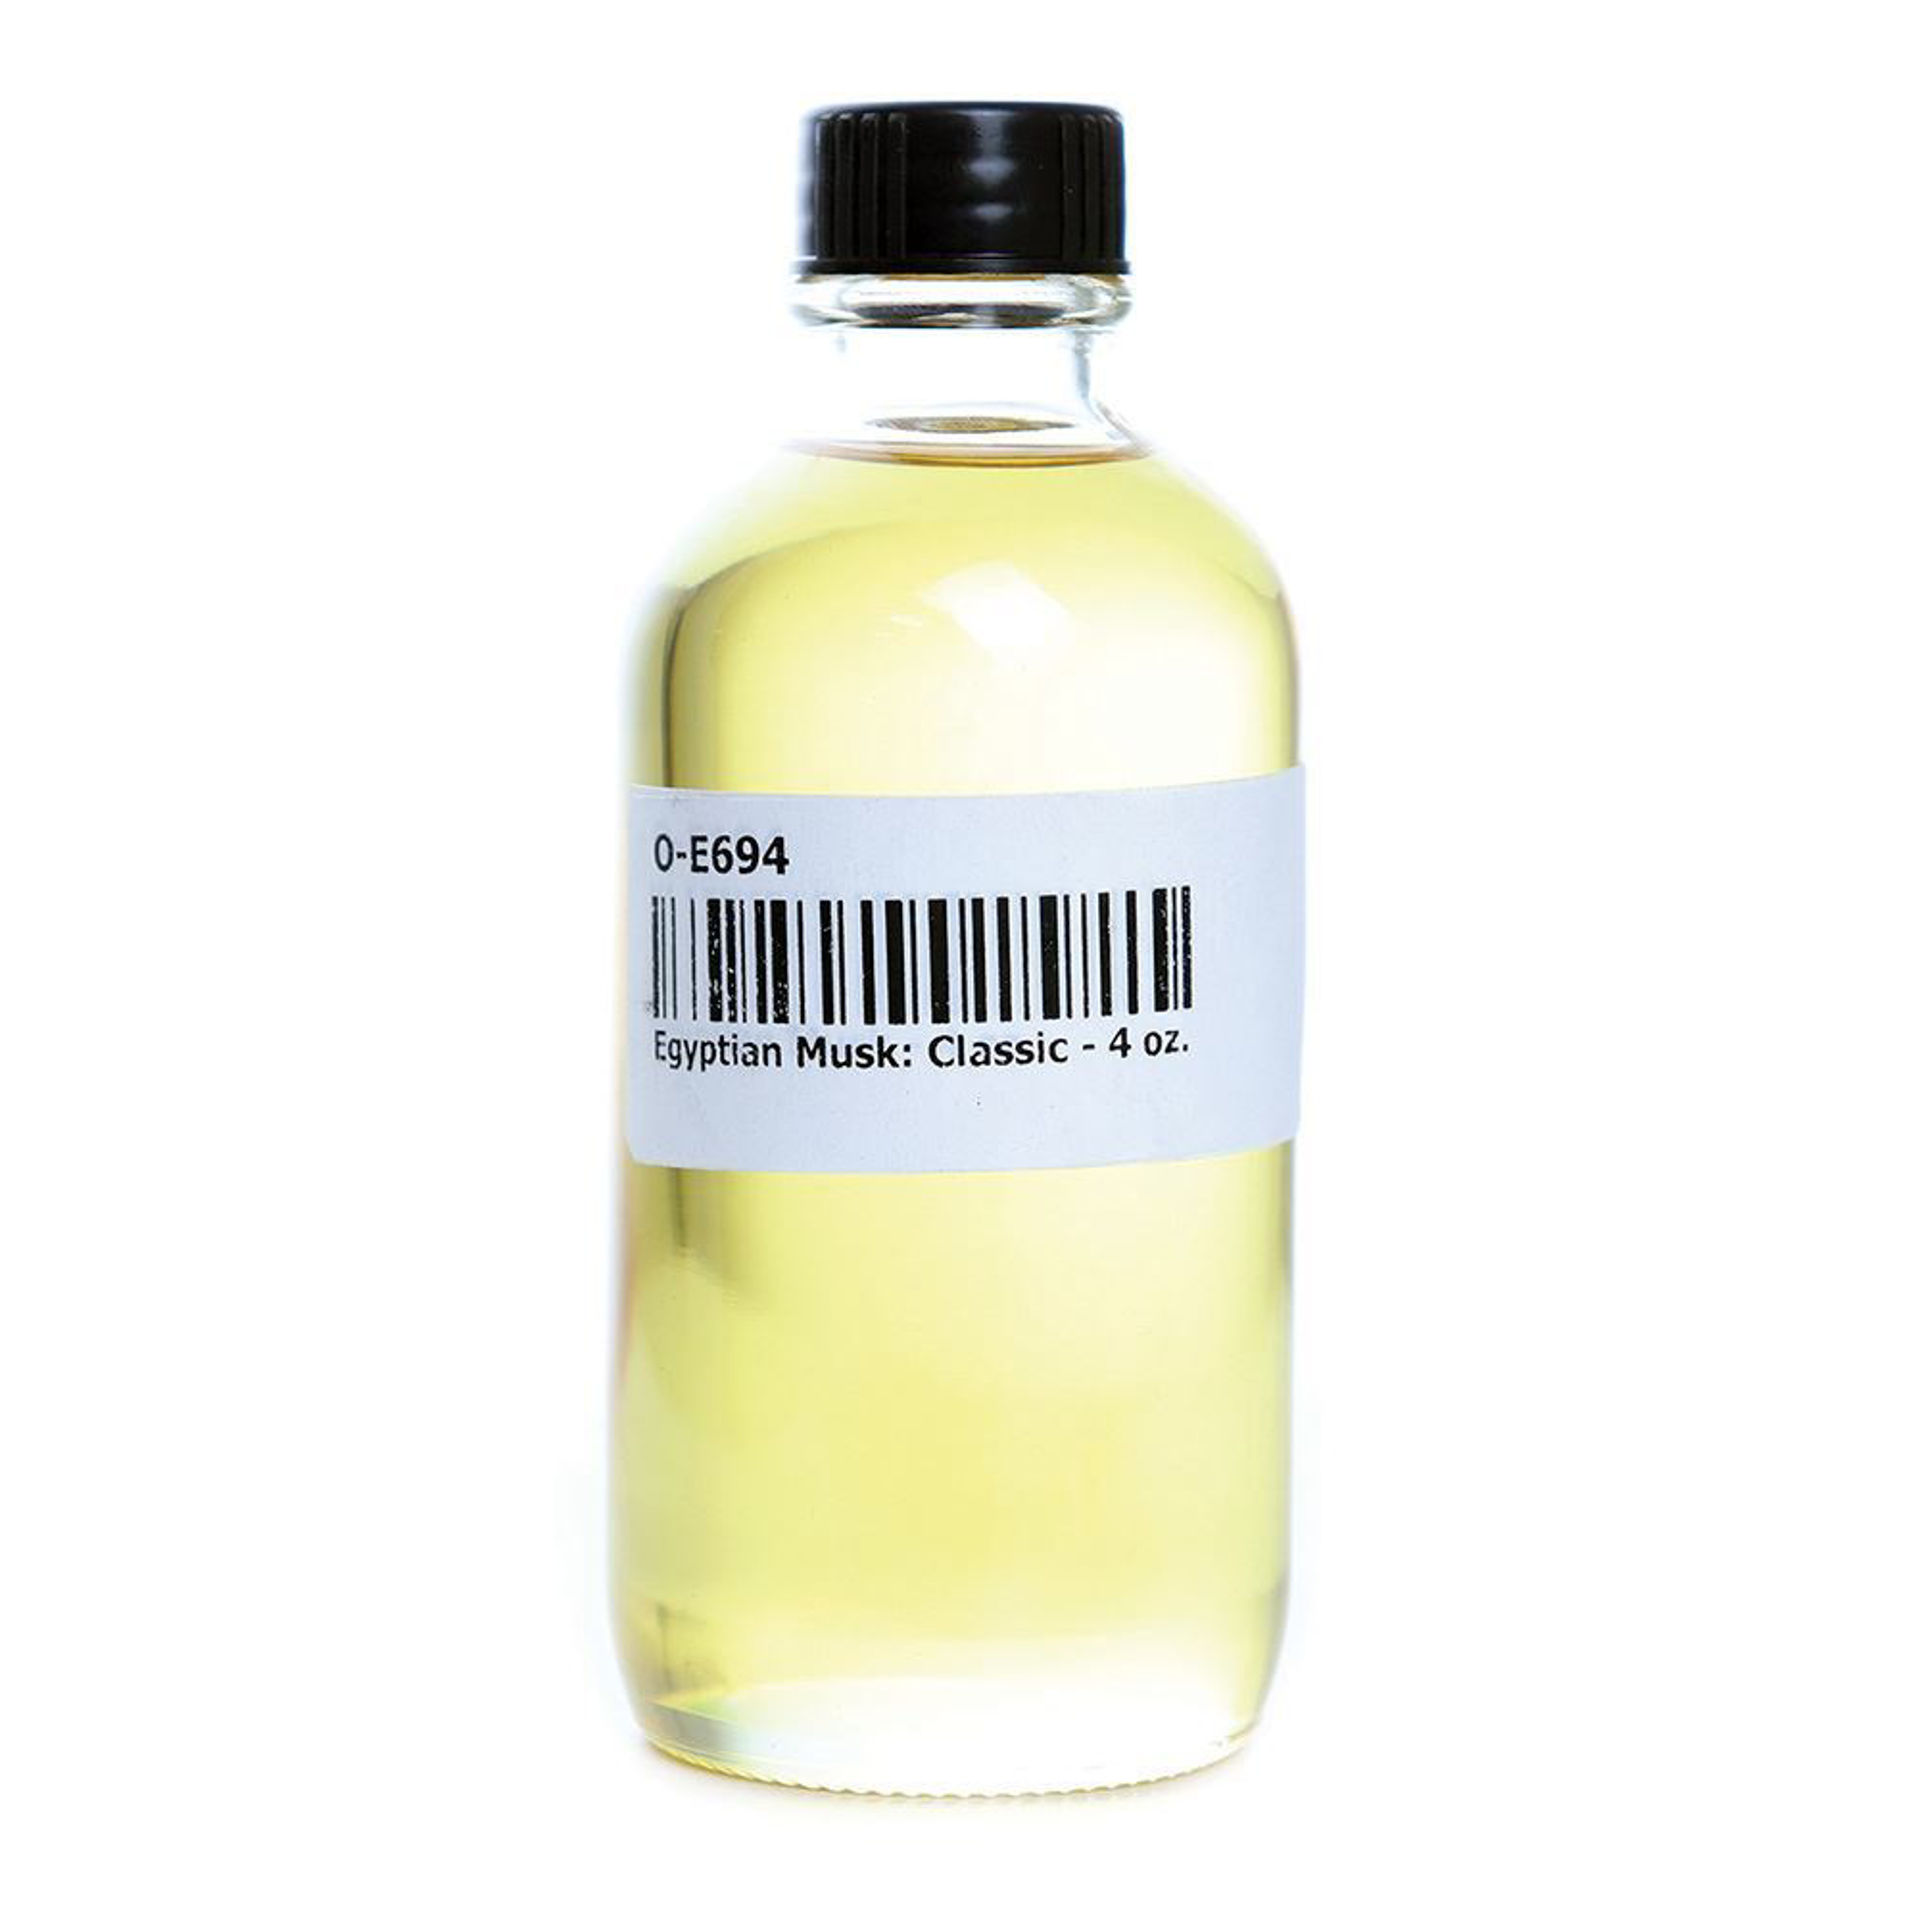 Picture of Egyptian Musk: Classic - 4 oz.